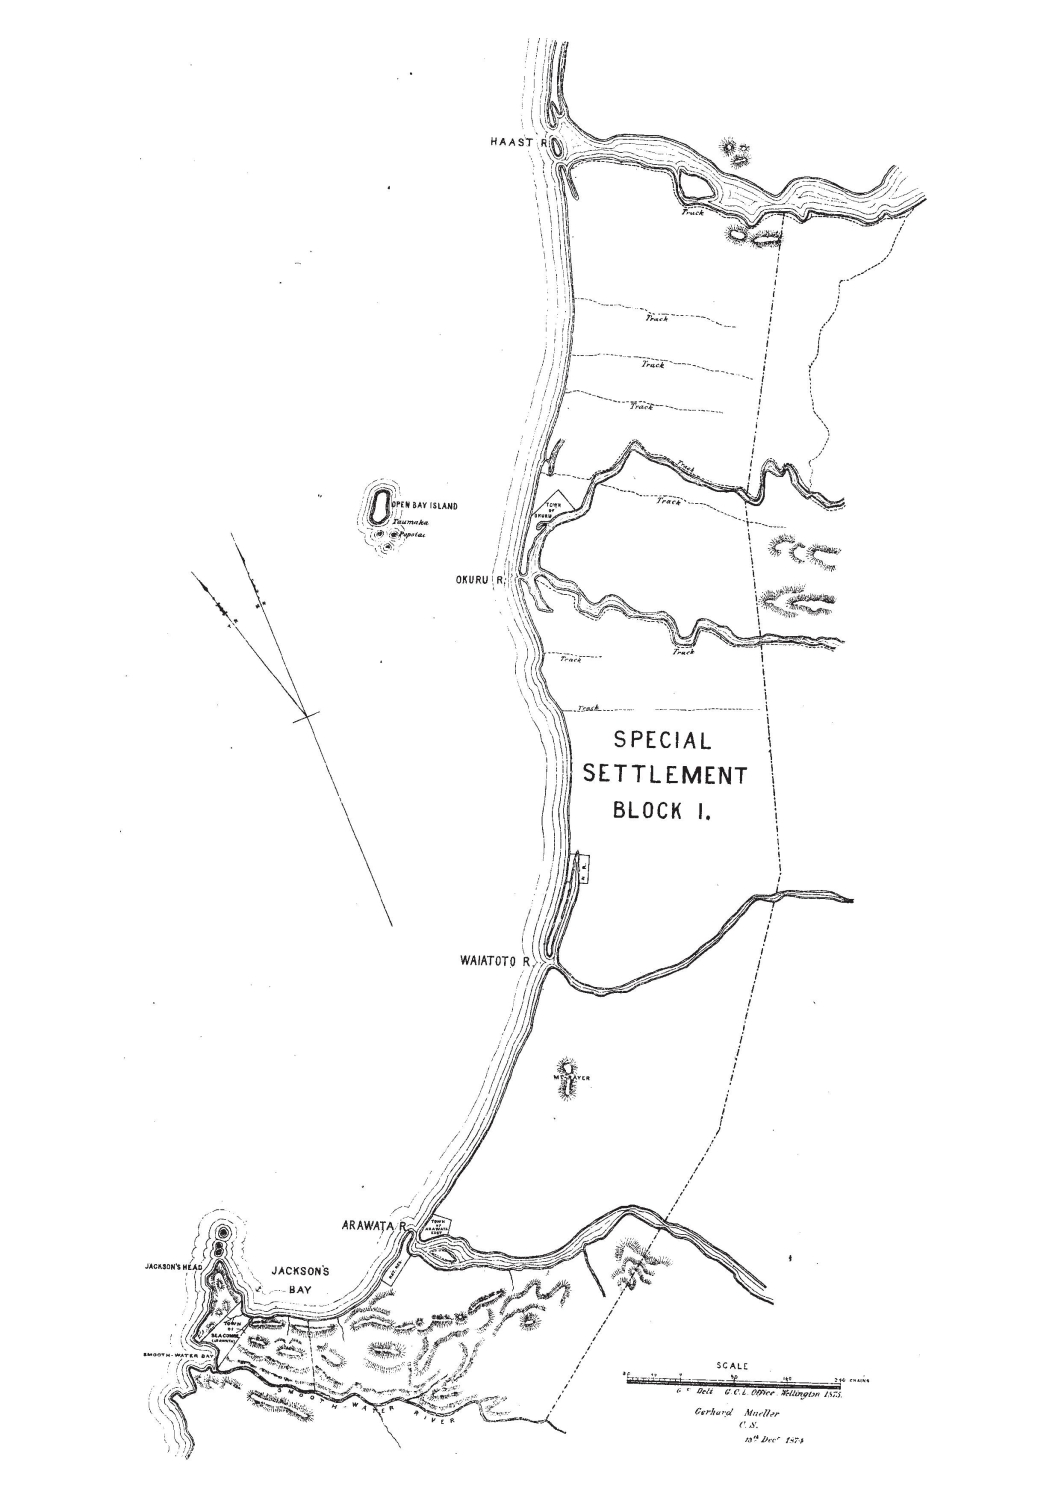 Map Jackson's  Bay Special Settlement